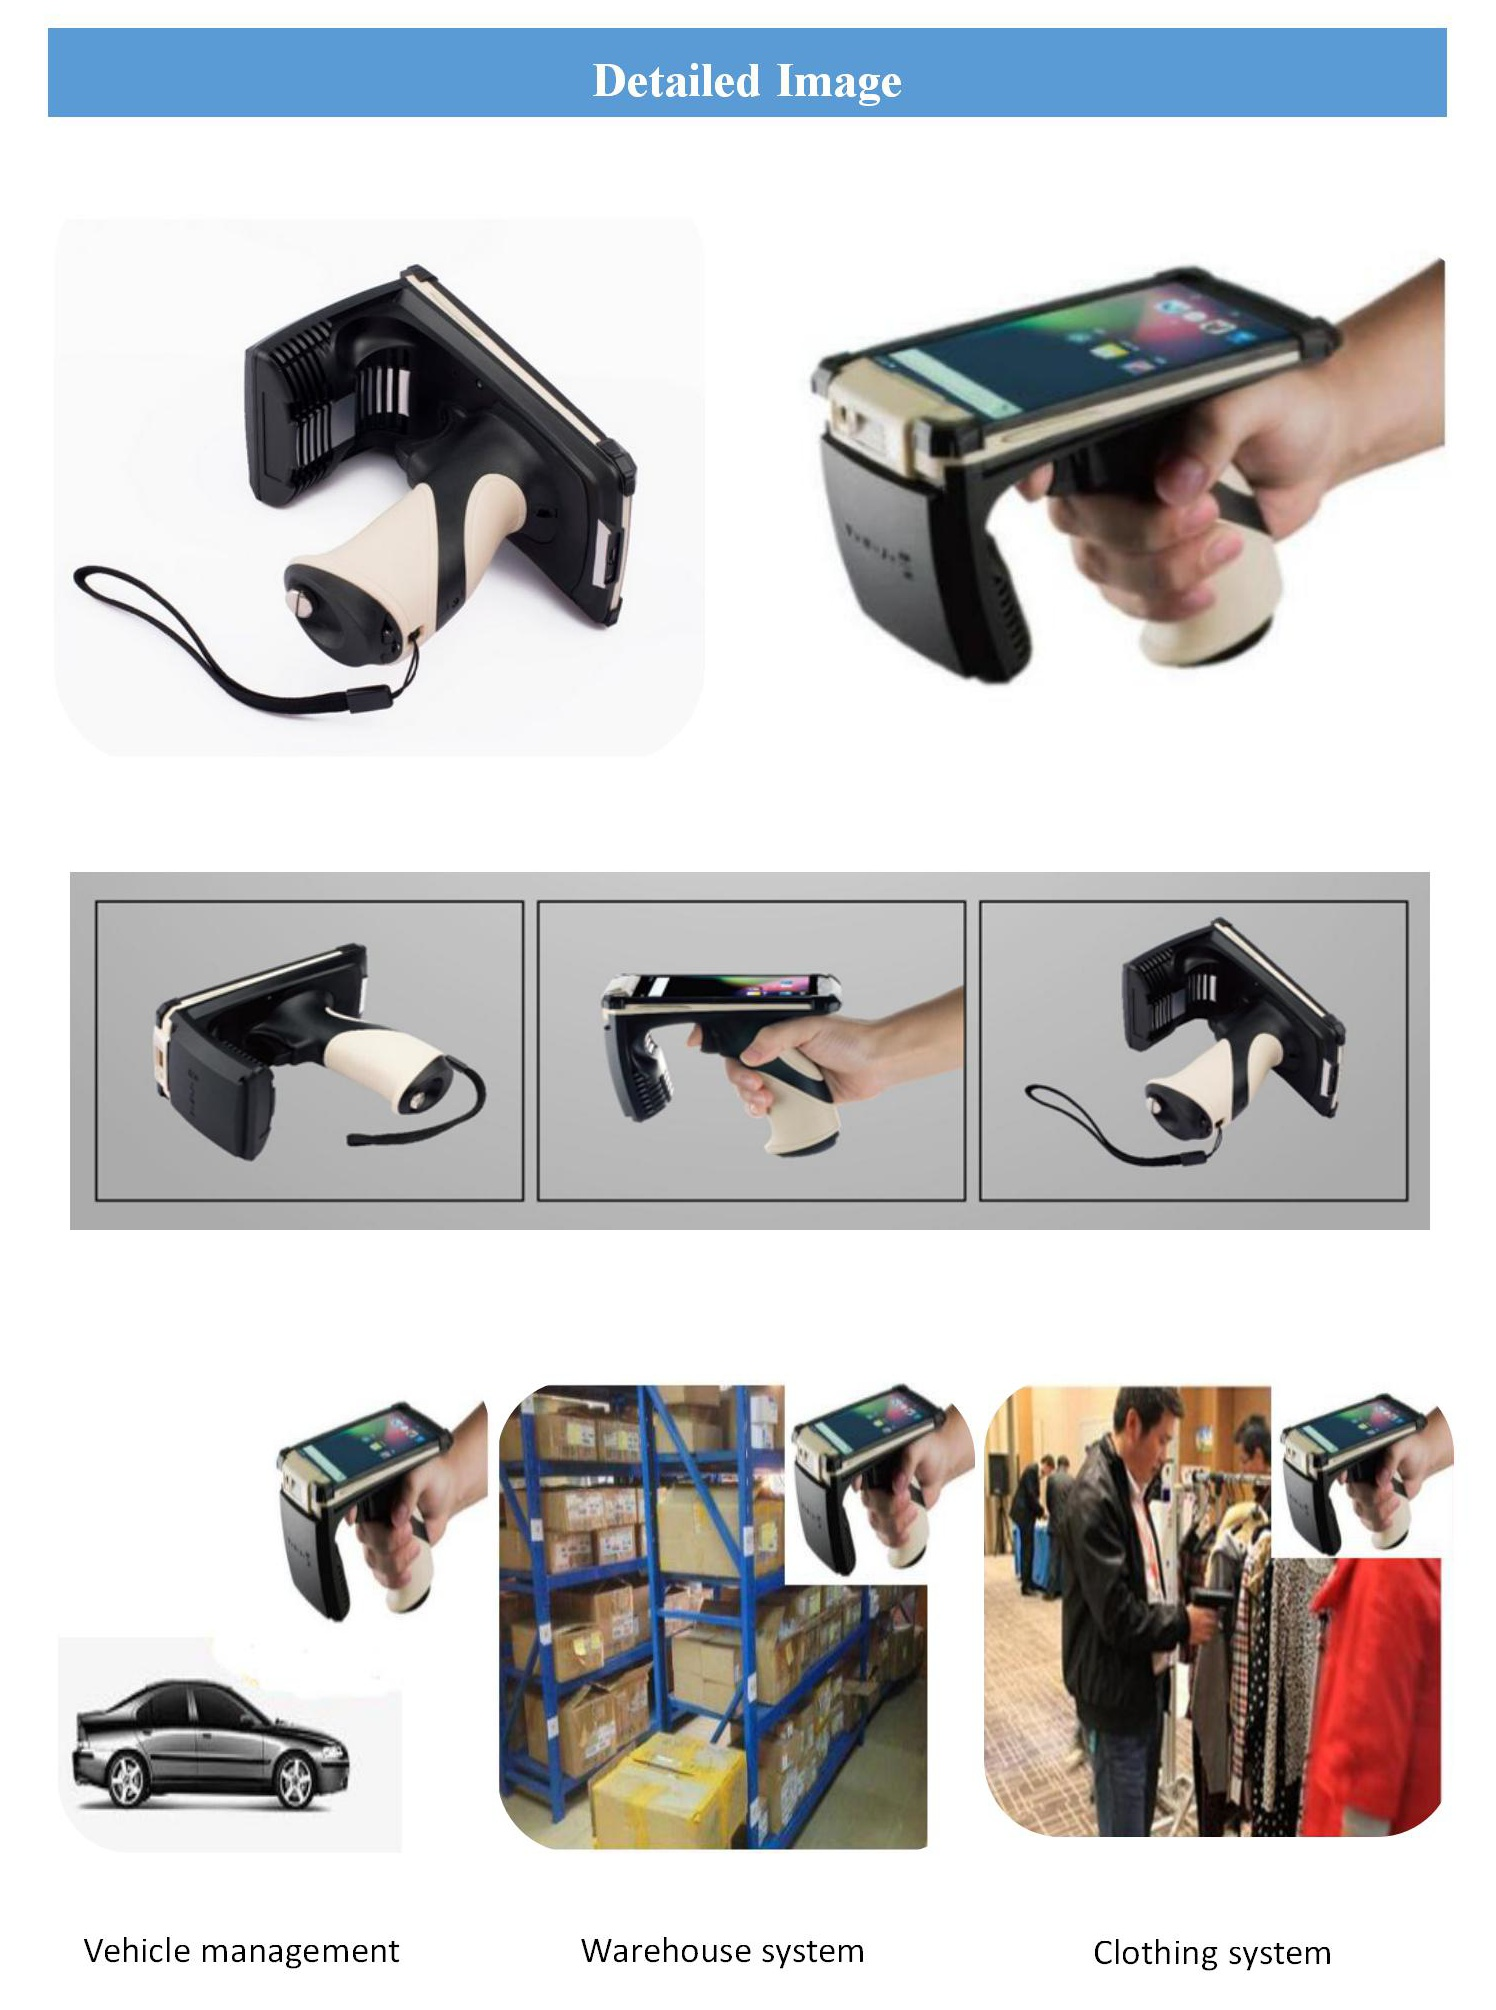 UHF RFID reader with WIFI bar-code scanner rfid attendance Long Range RFID Handheld Reader Writer Android in warehouse trace